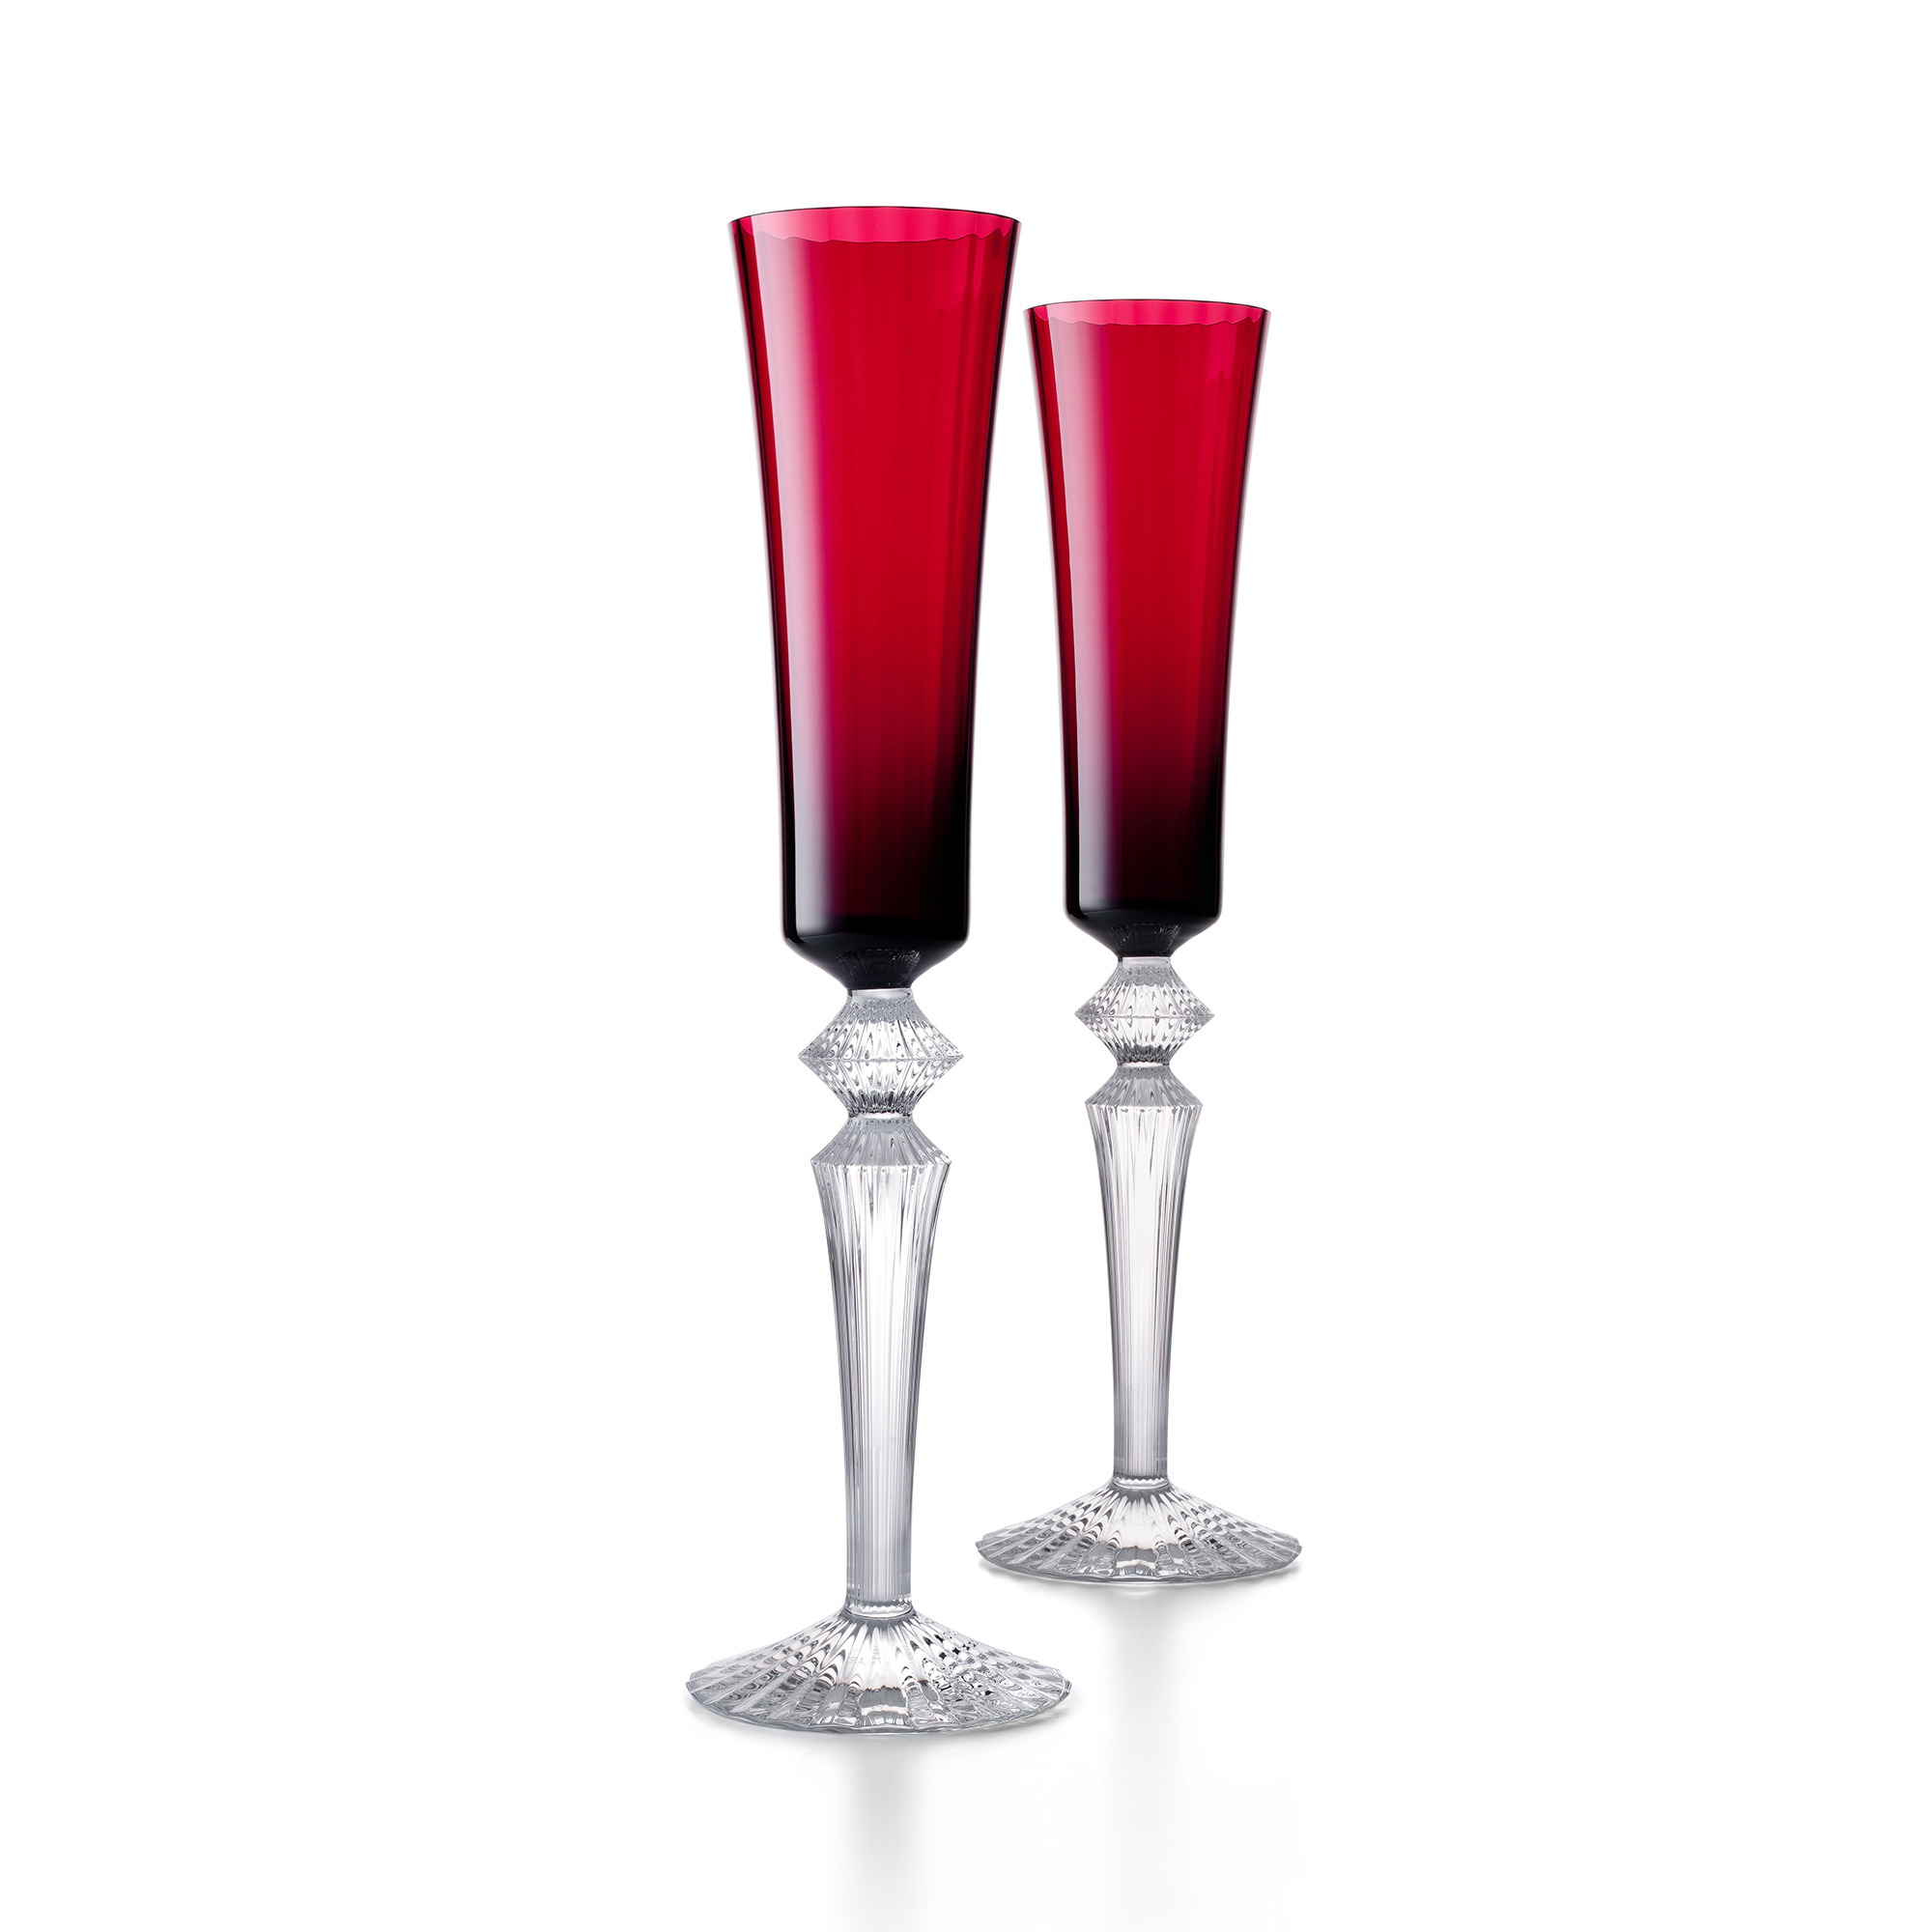 Baccarat Mille Nuits Flutissimo Flutes, Set of 2 Red